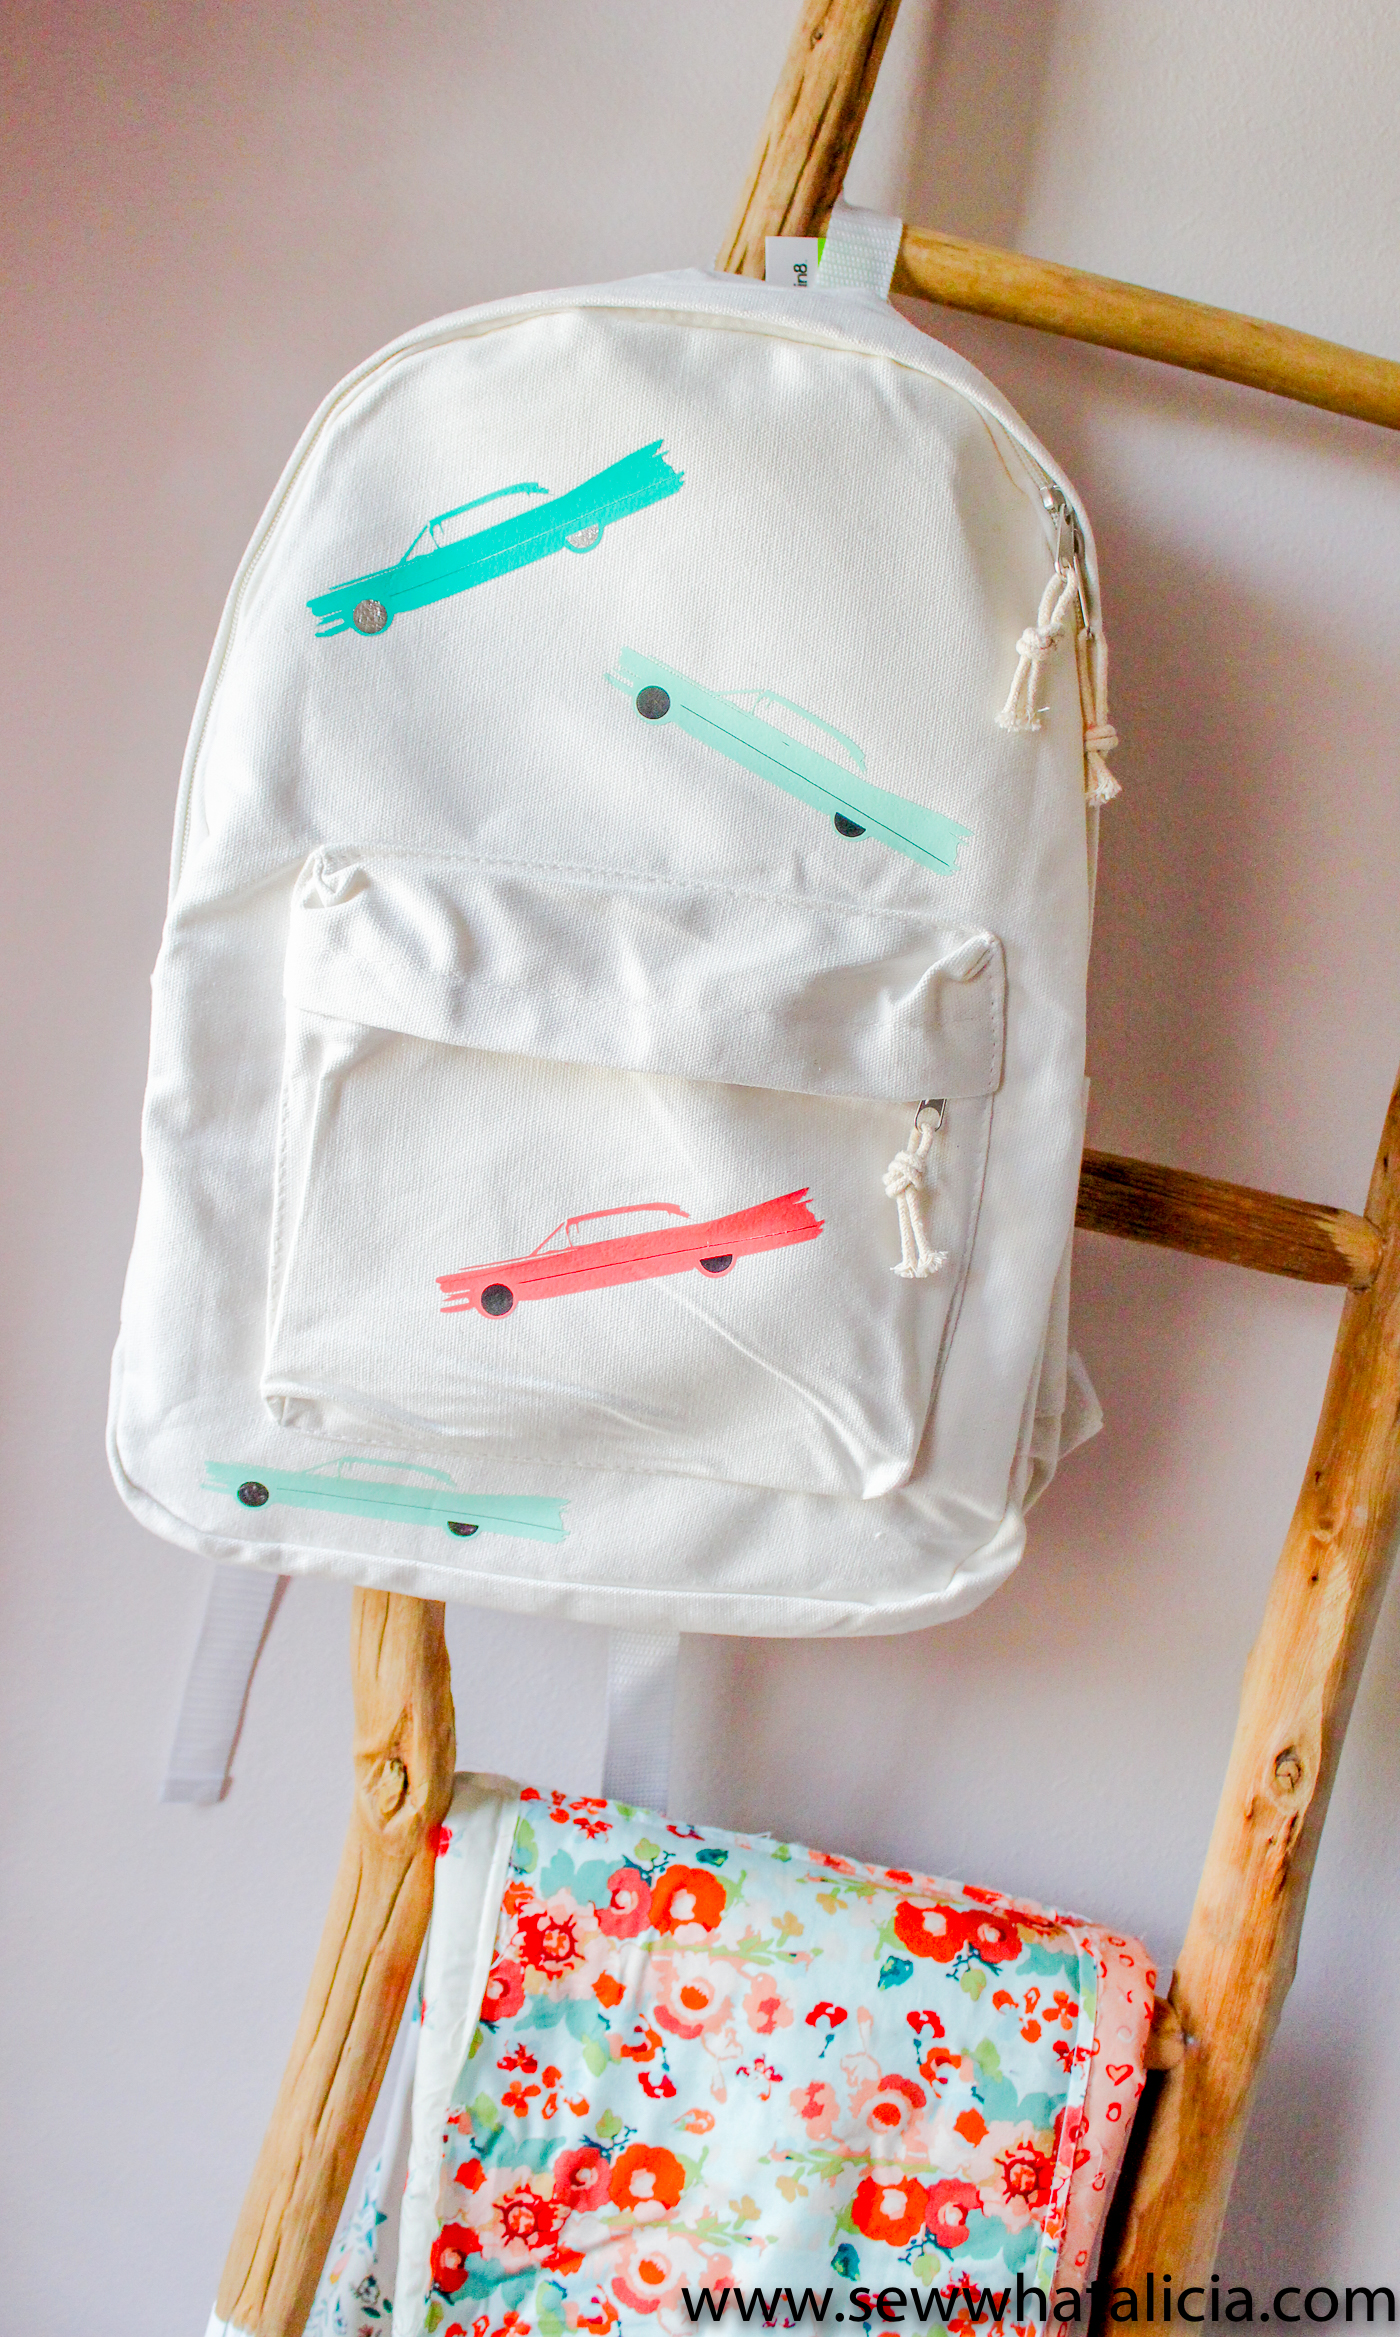 Tips for layering heat press vinyl: create this adorable backpack by layering heat transfer vinyl. Click through for all the tips plus info on the palm springs cut file bundle used to create this project. | www.sewwhatalicia.com